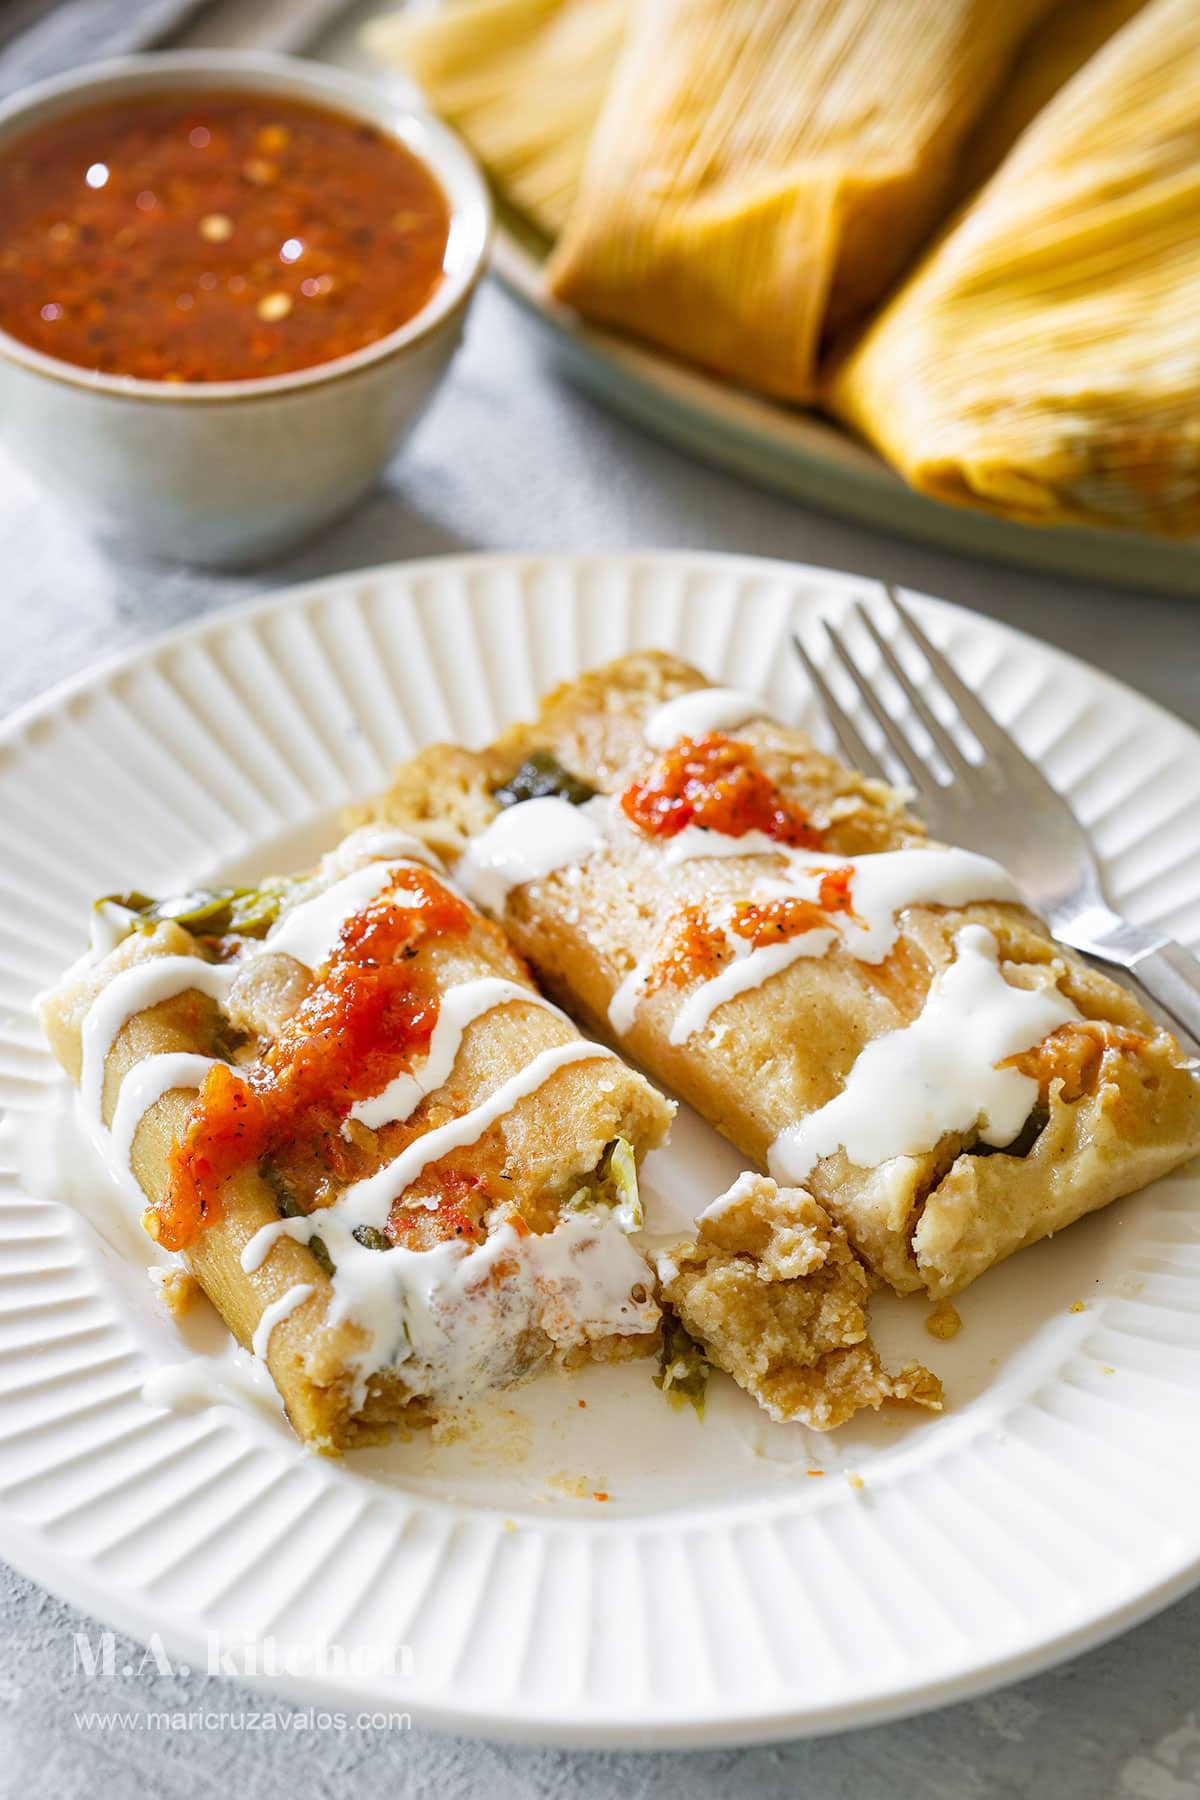 Tamales de rajas served with cream and salsa on top.